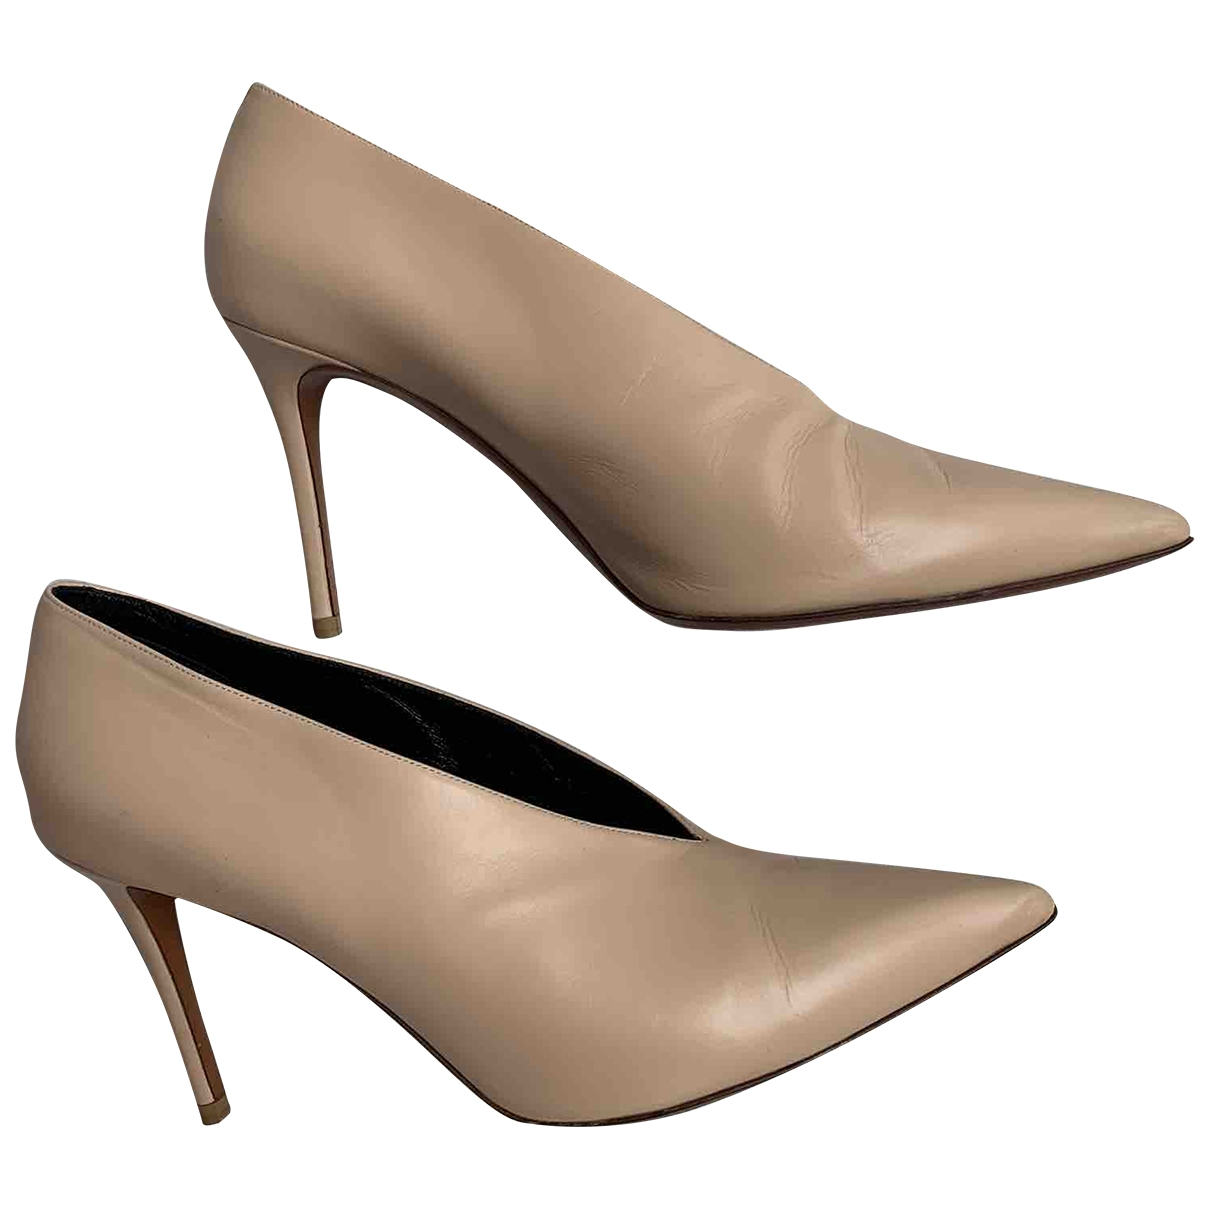 Celine Soft V Neck Beige Leather Heels for Women 39.5 EU